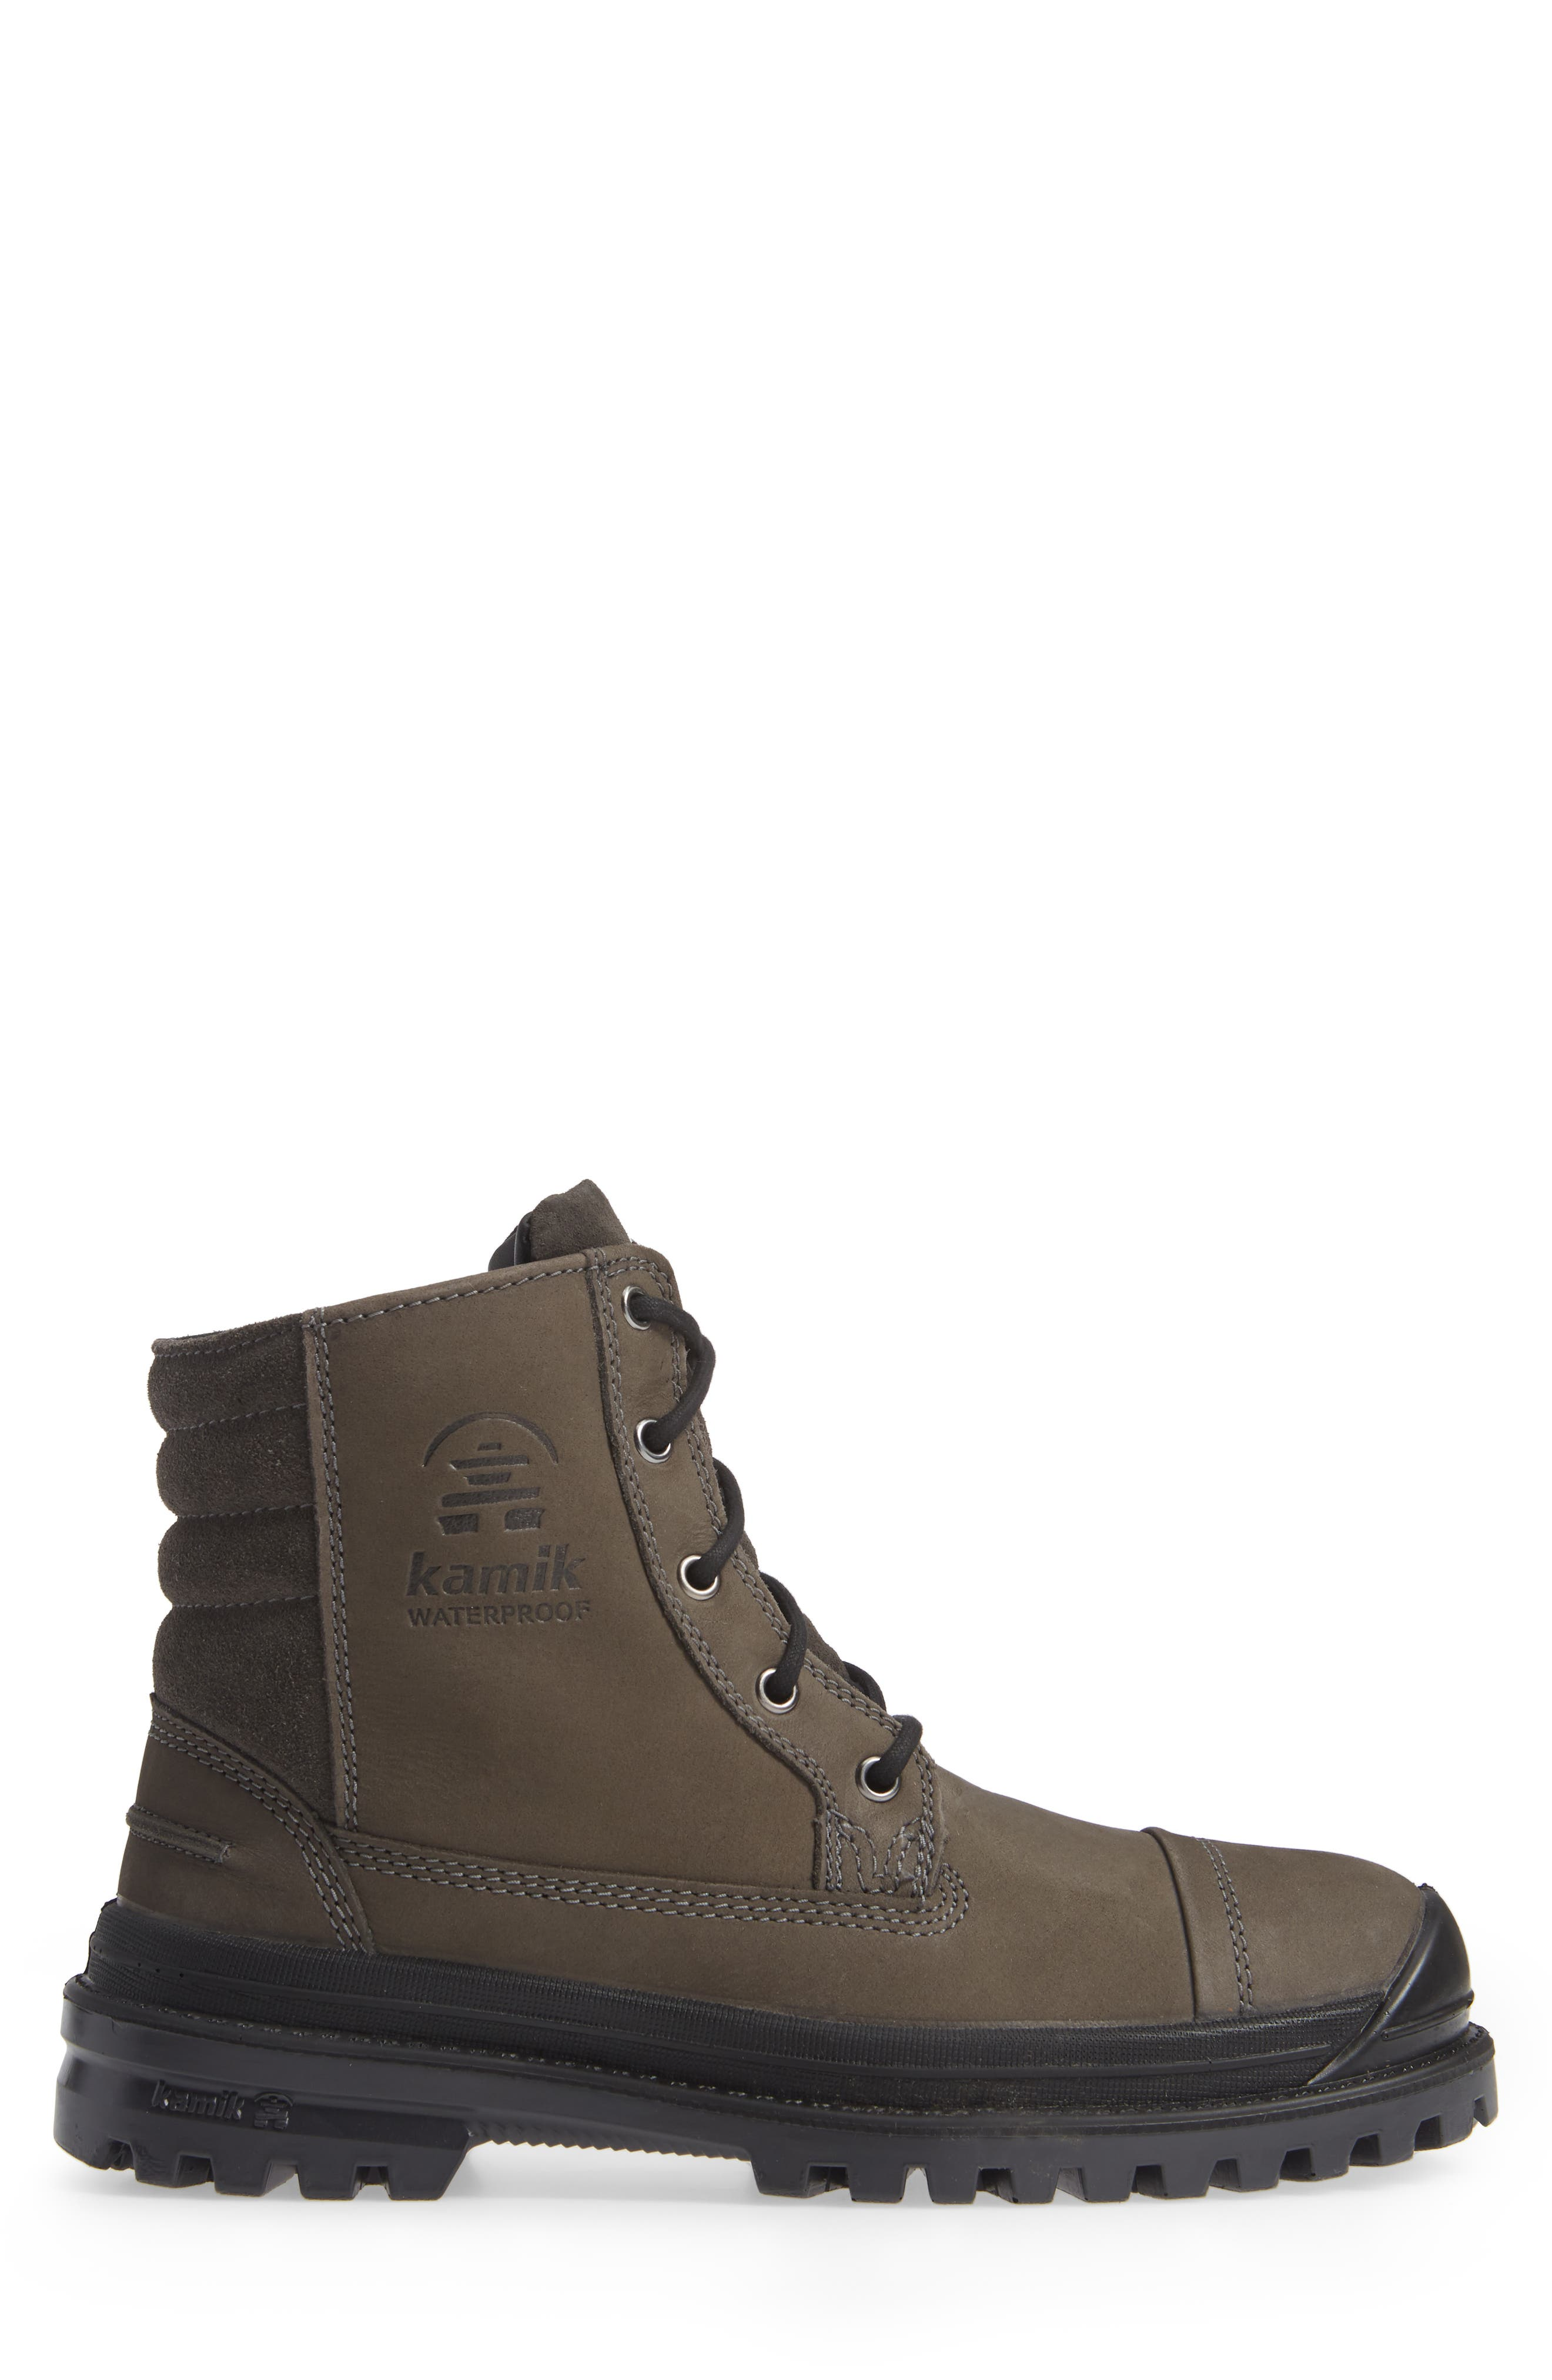 Griffon Waterproof Boot,                             Alternate thumbnail 3, color,                             CHARCOAL LEATHER